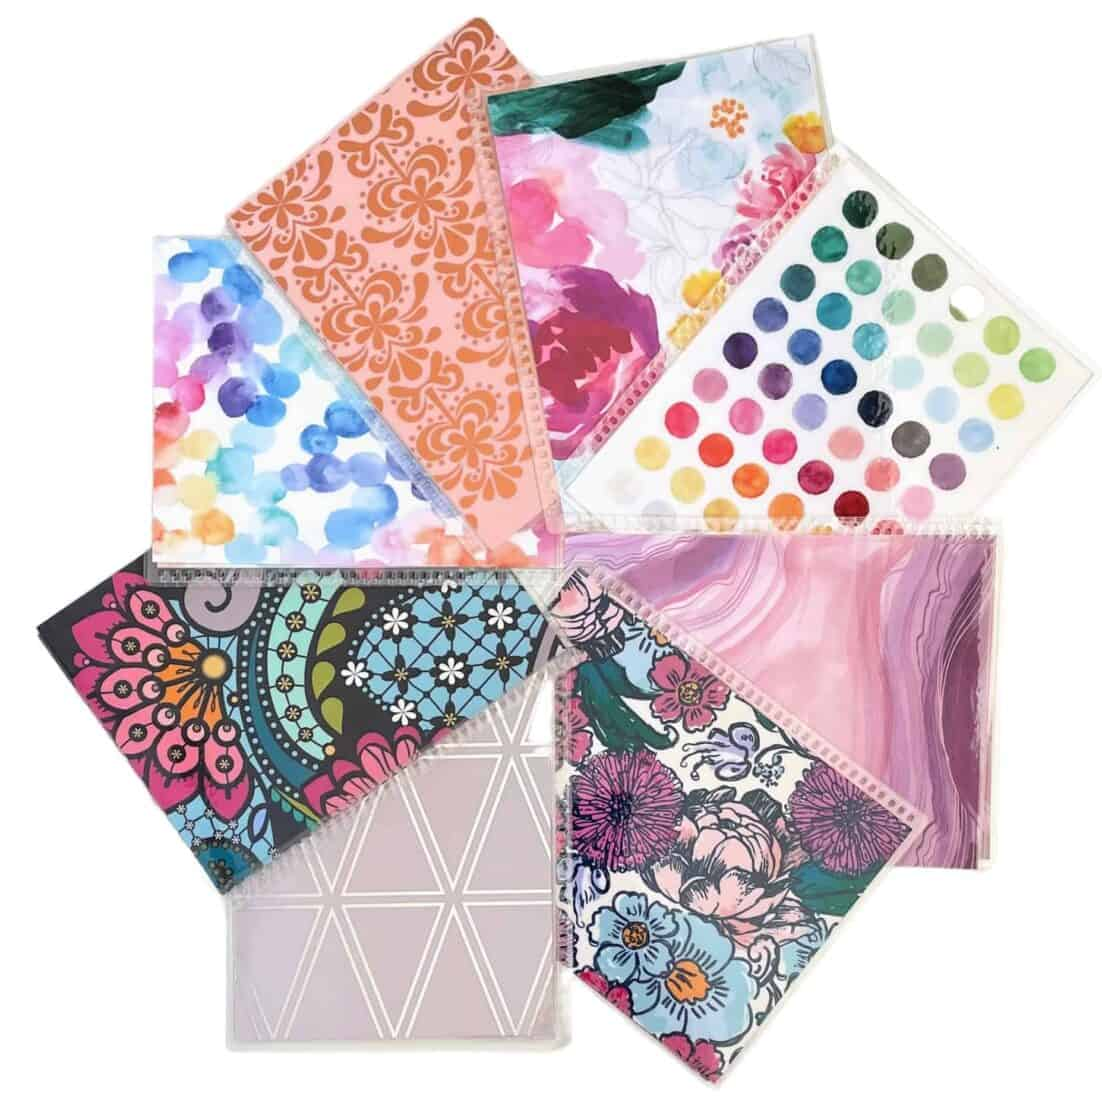 Erin Condren LifePlanner covers spread in a circle